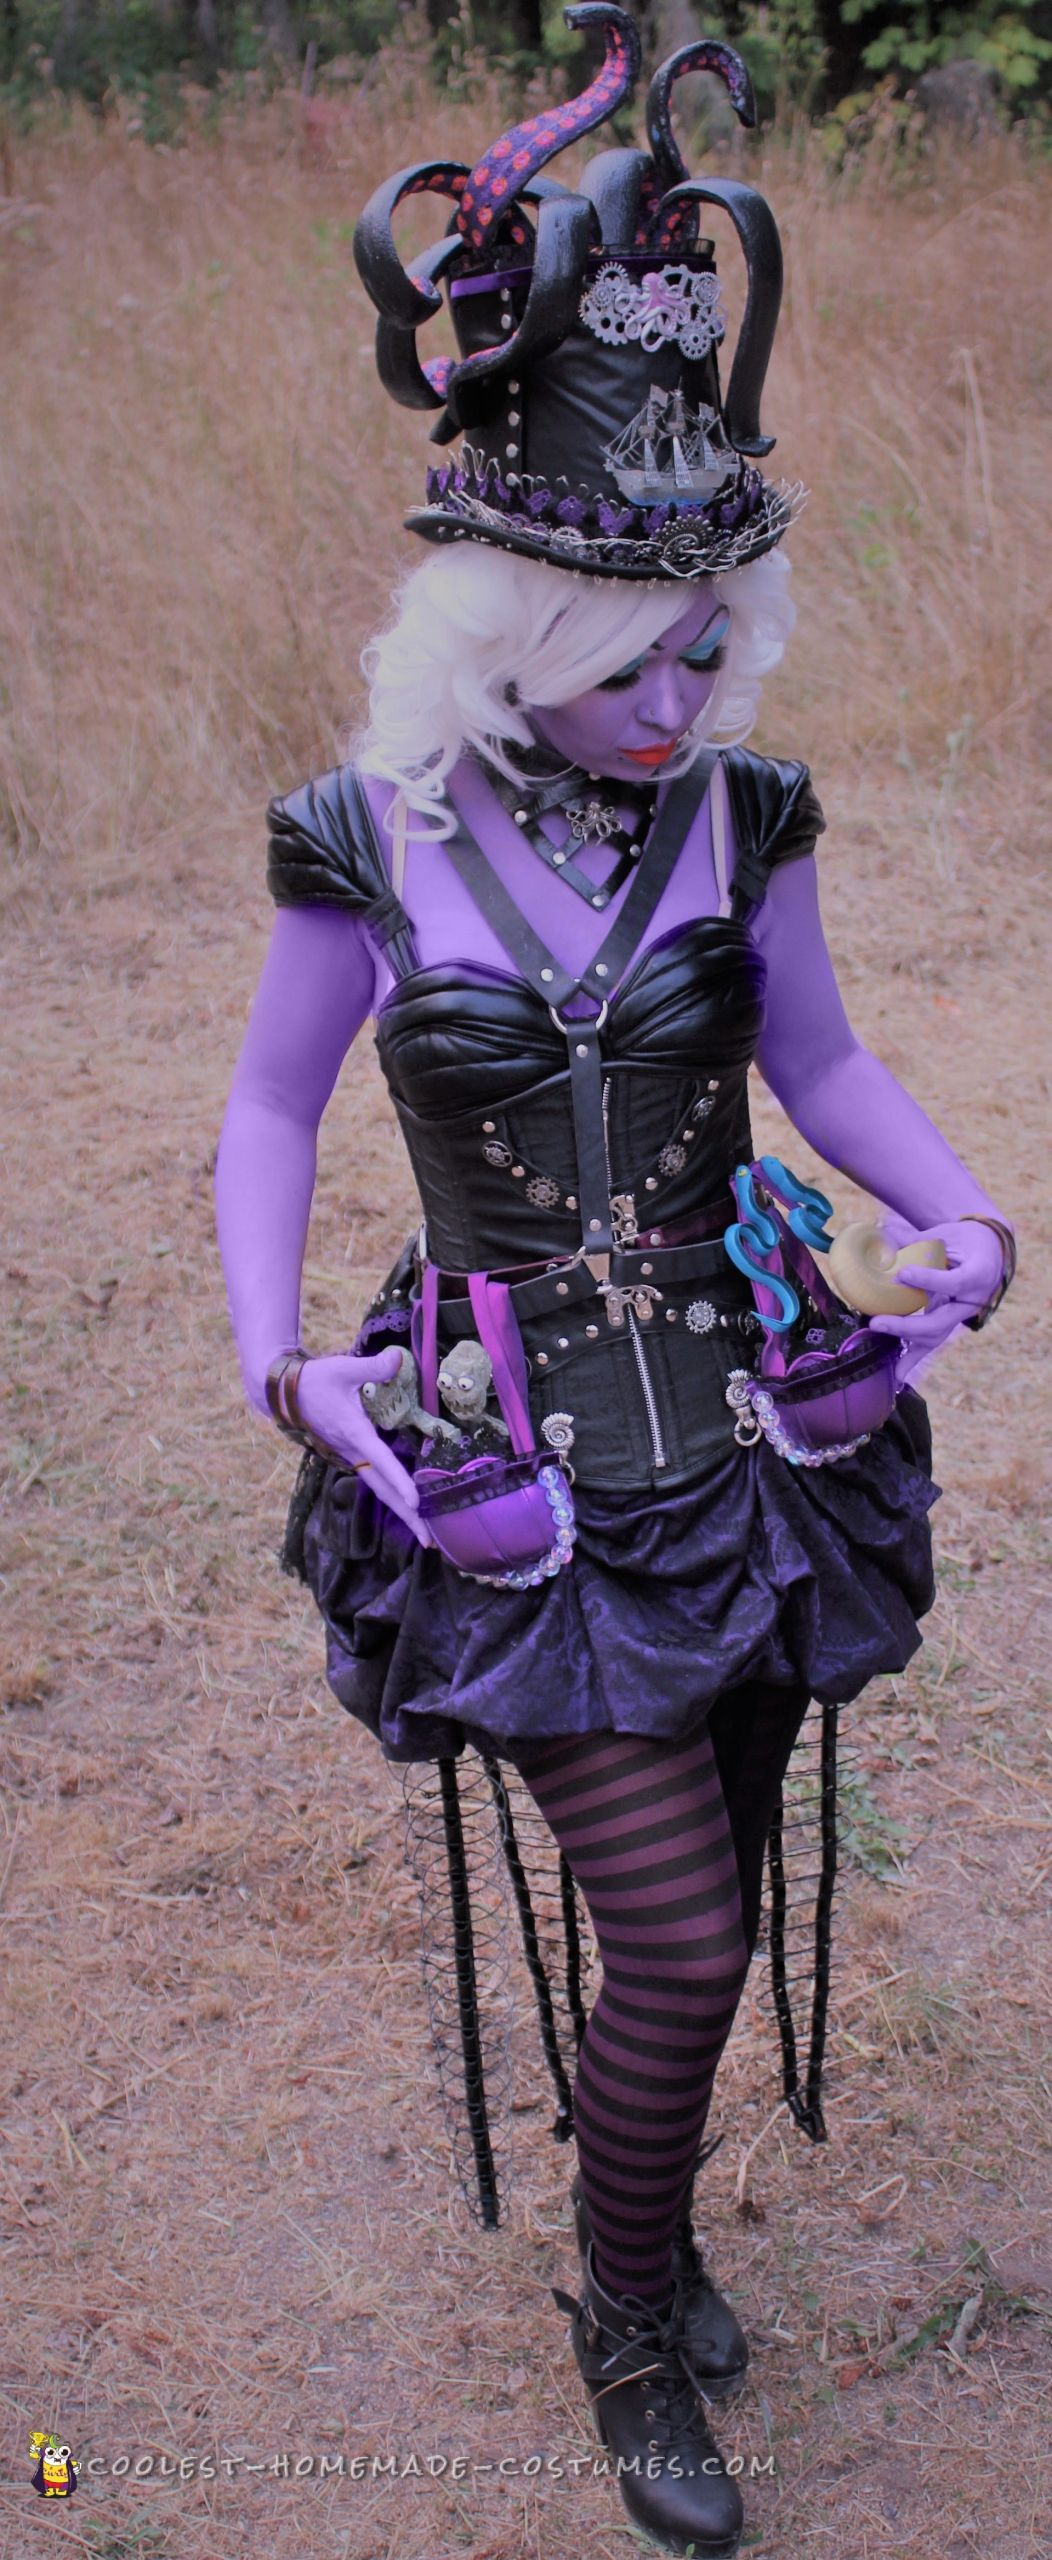 Ursula Costume DIY  Awesome DIY Steampunk Ursula Costume is Making Waves